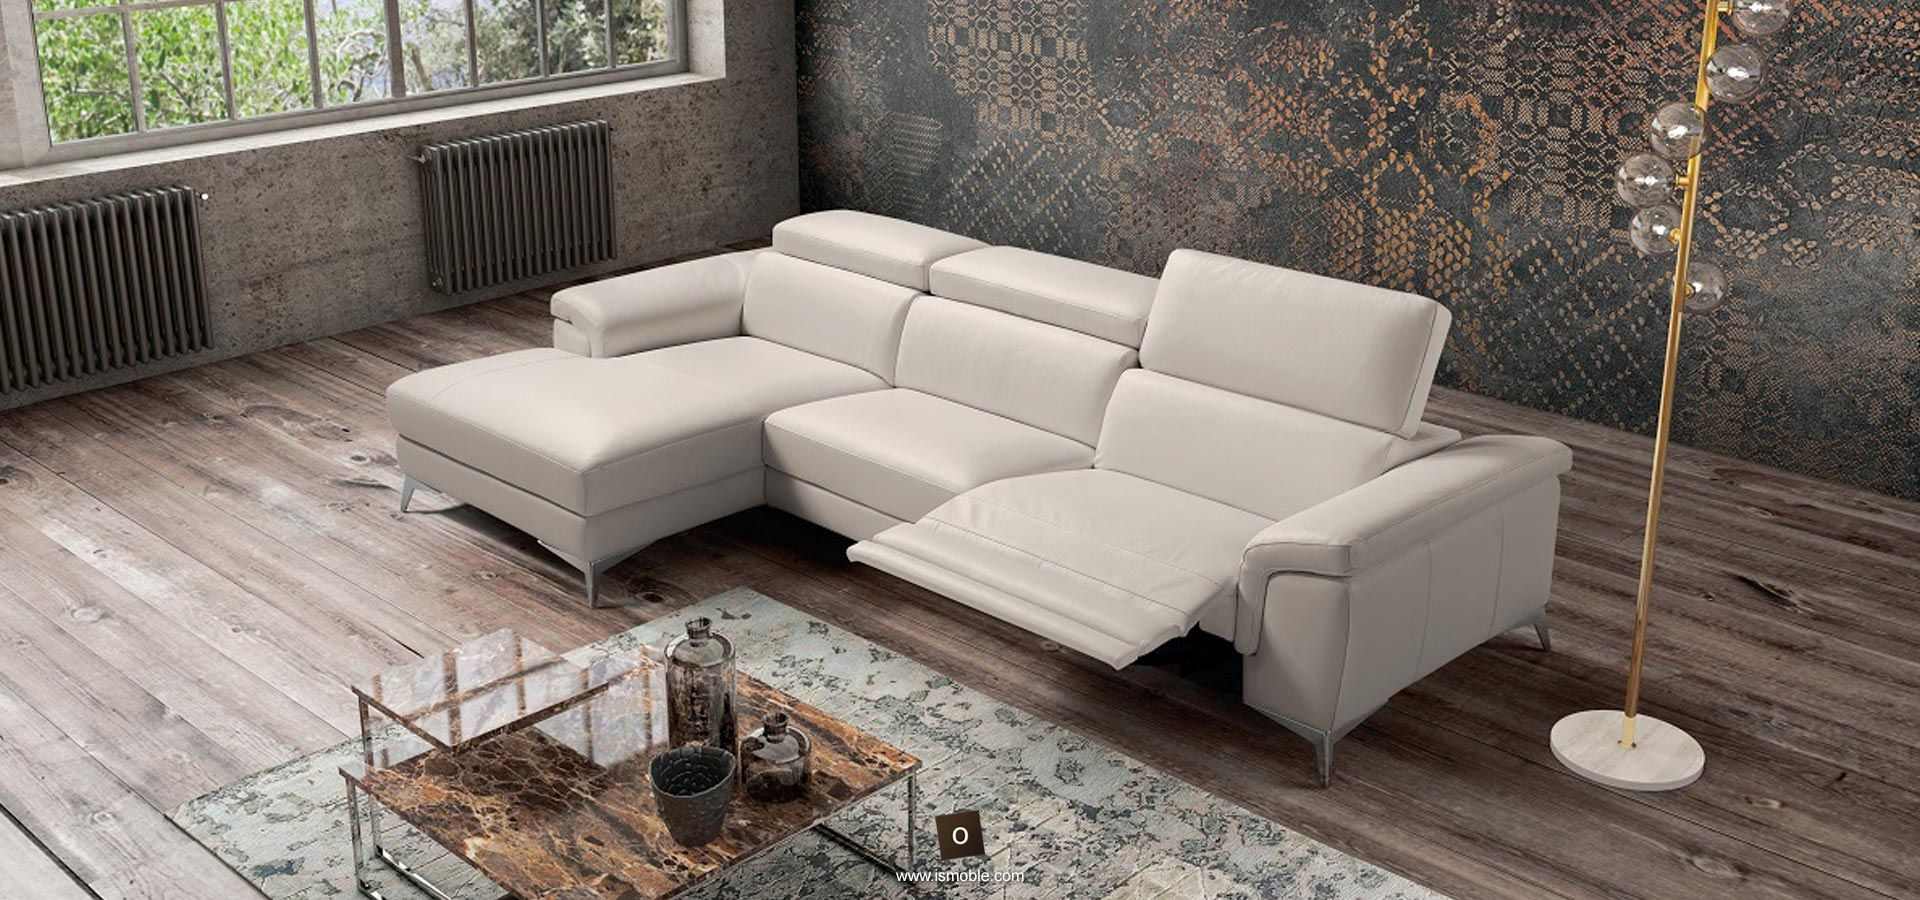 Sofà reclinable amb home cinema